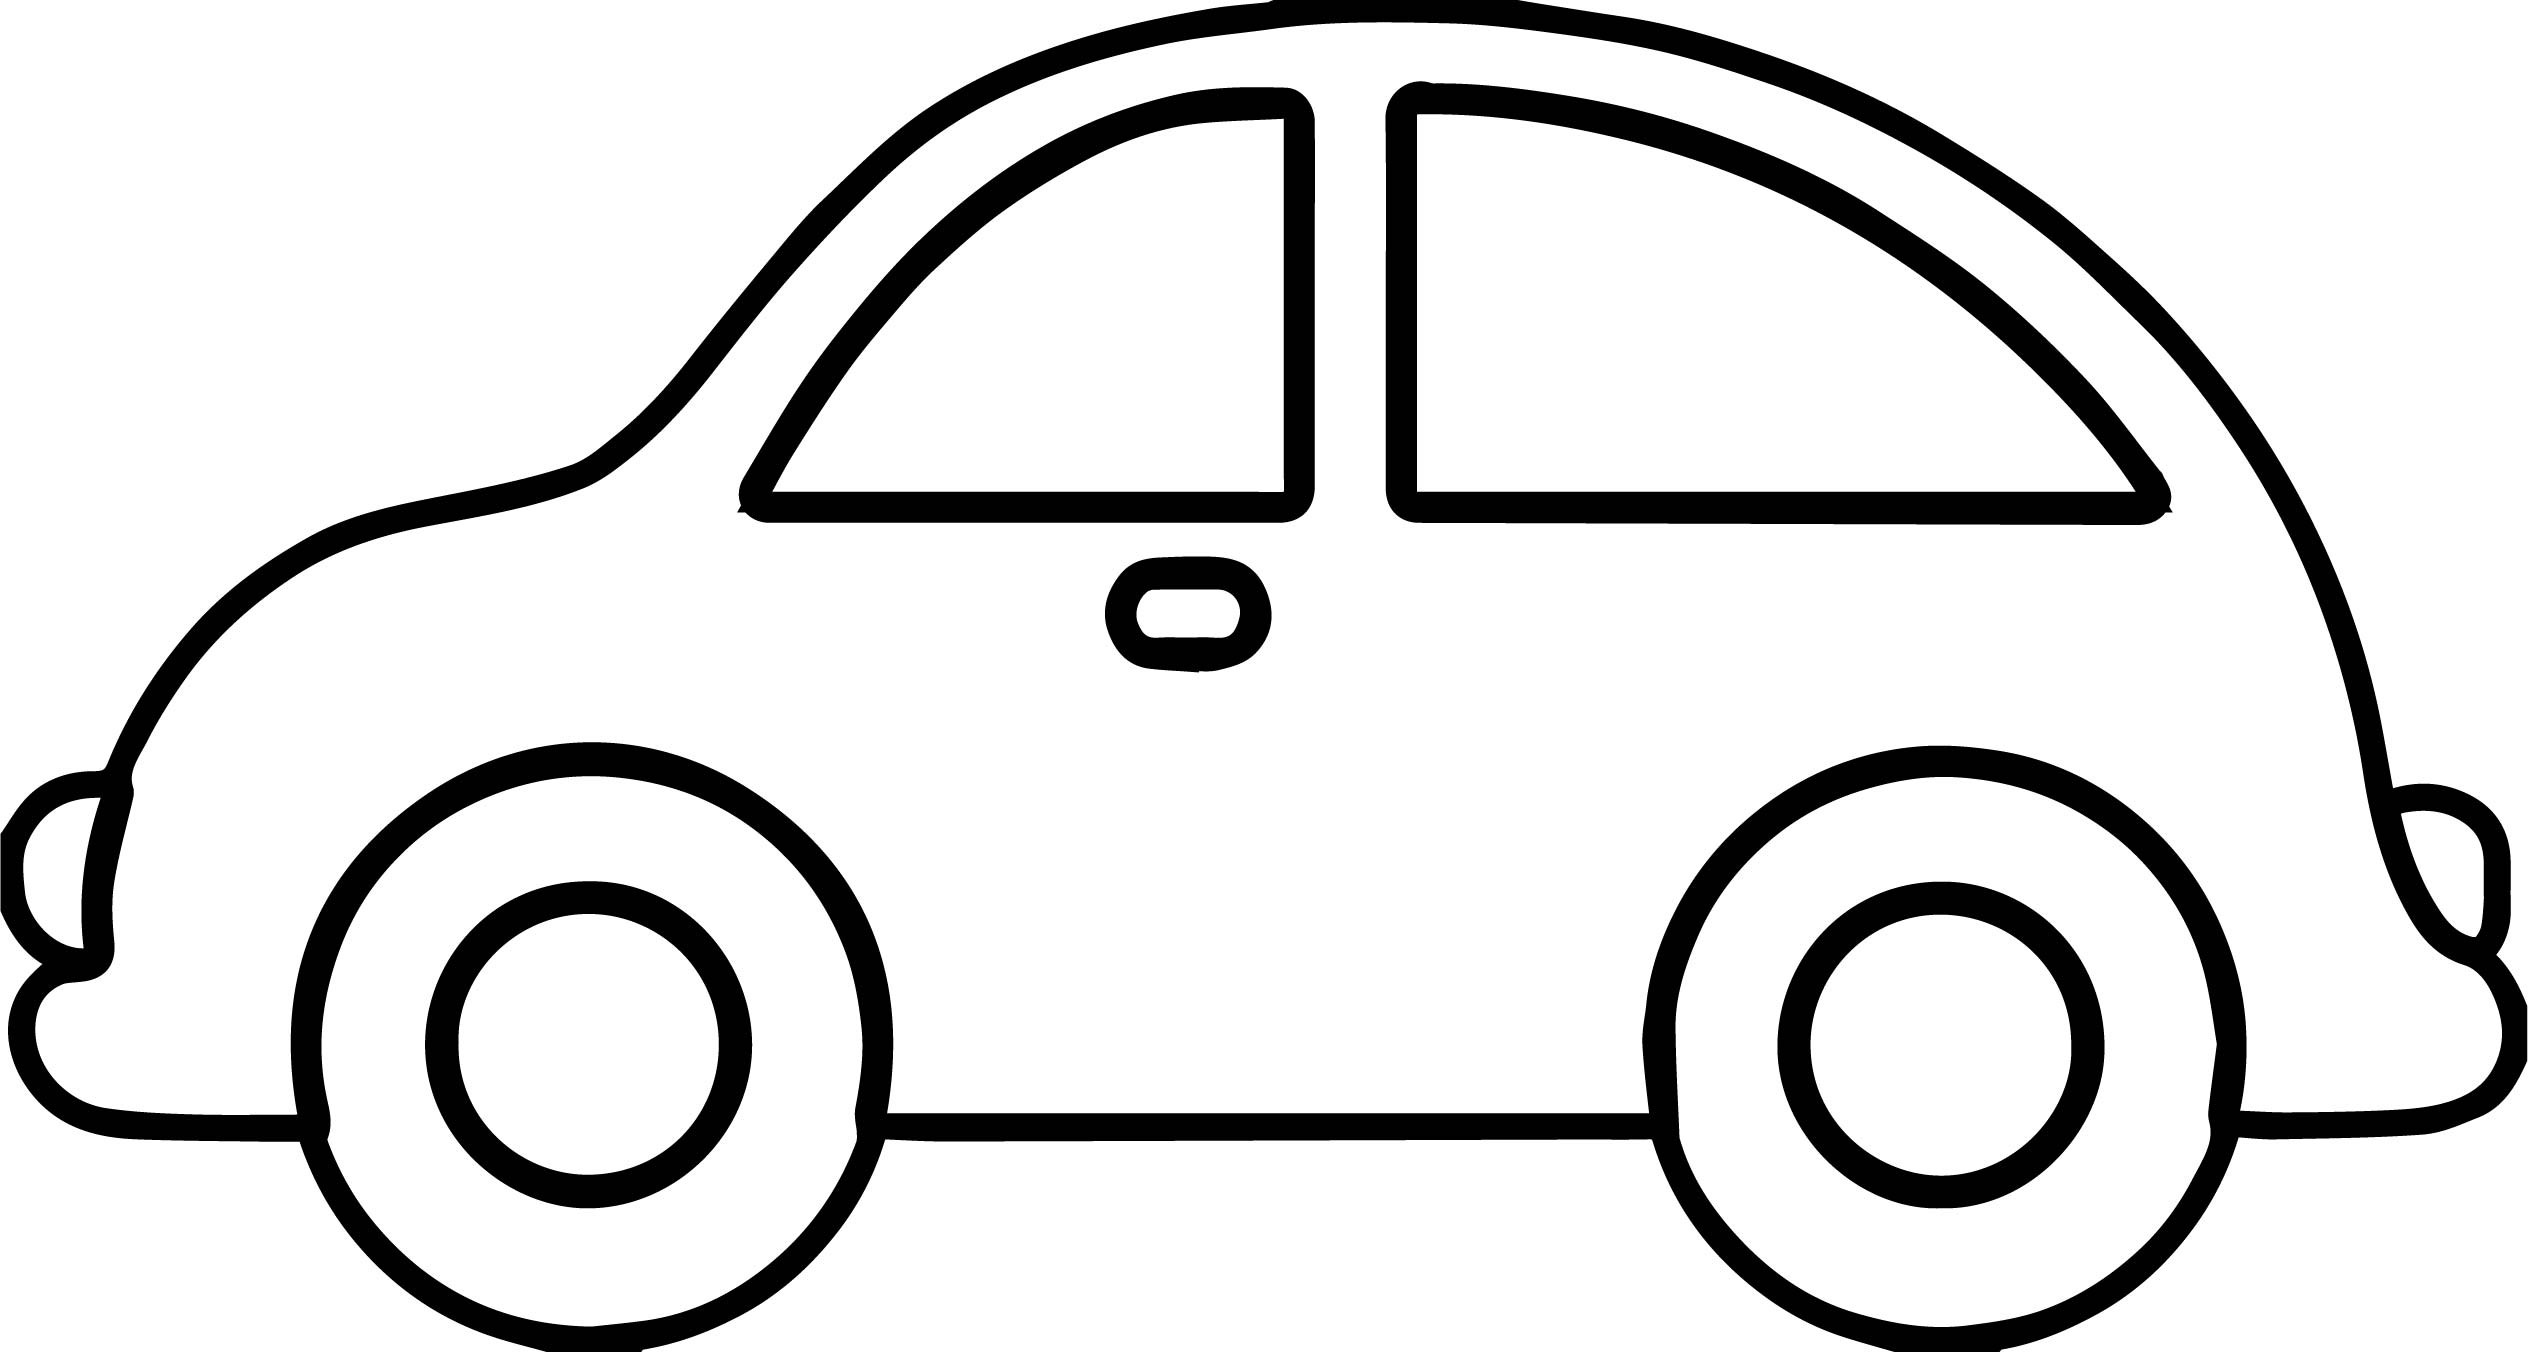 Car Drawing Side View At Getdrawings Com Free For Personal Use Car